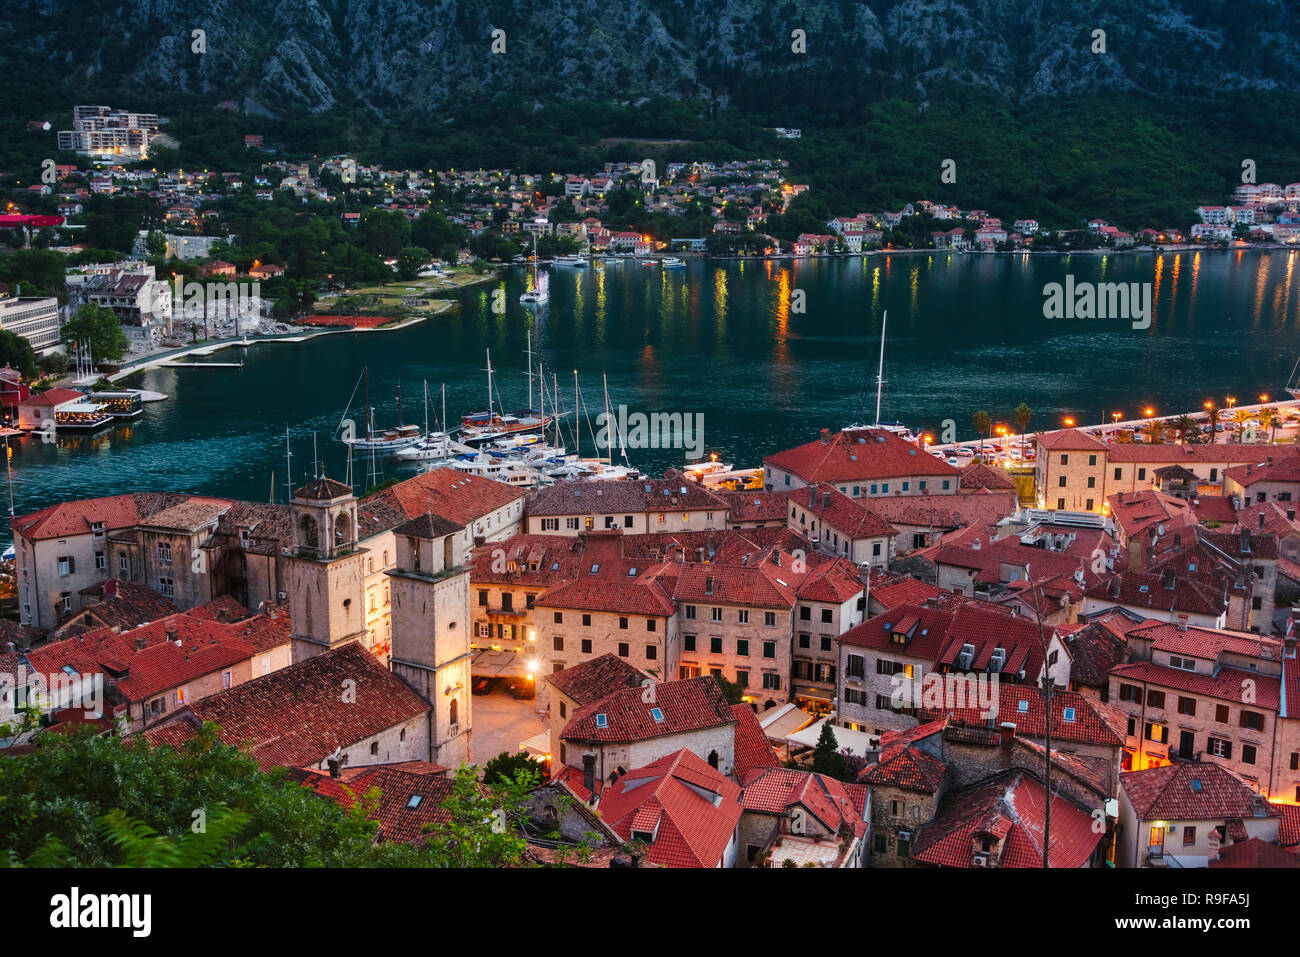 Red roof houses and boats on the Adriatic coast in the Bay of Kotor at dusk, Montenegro - Stock Image